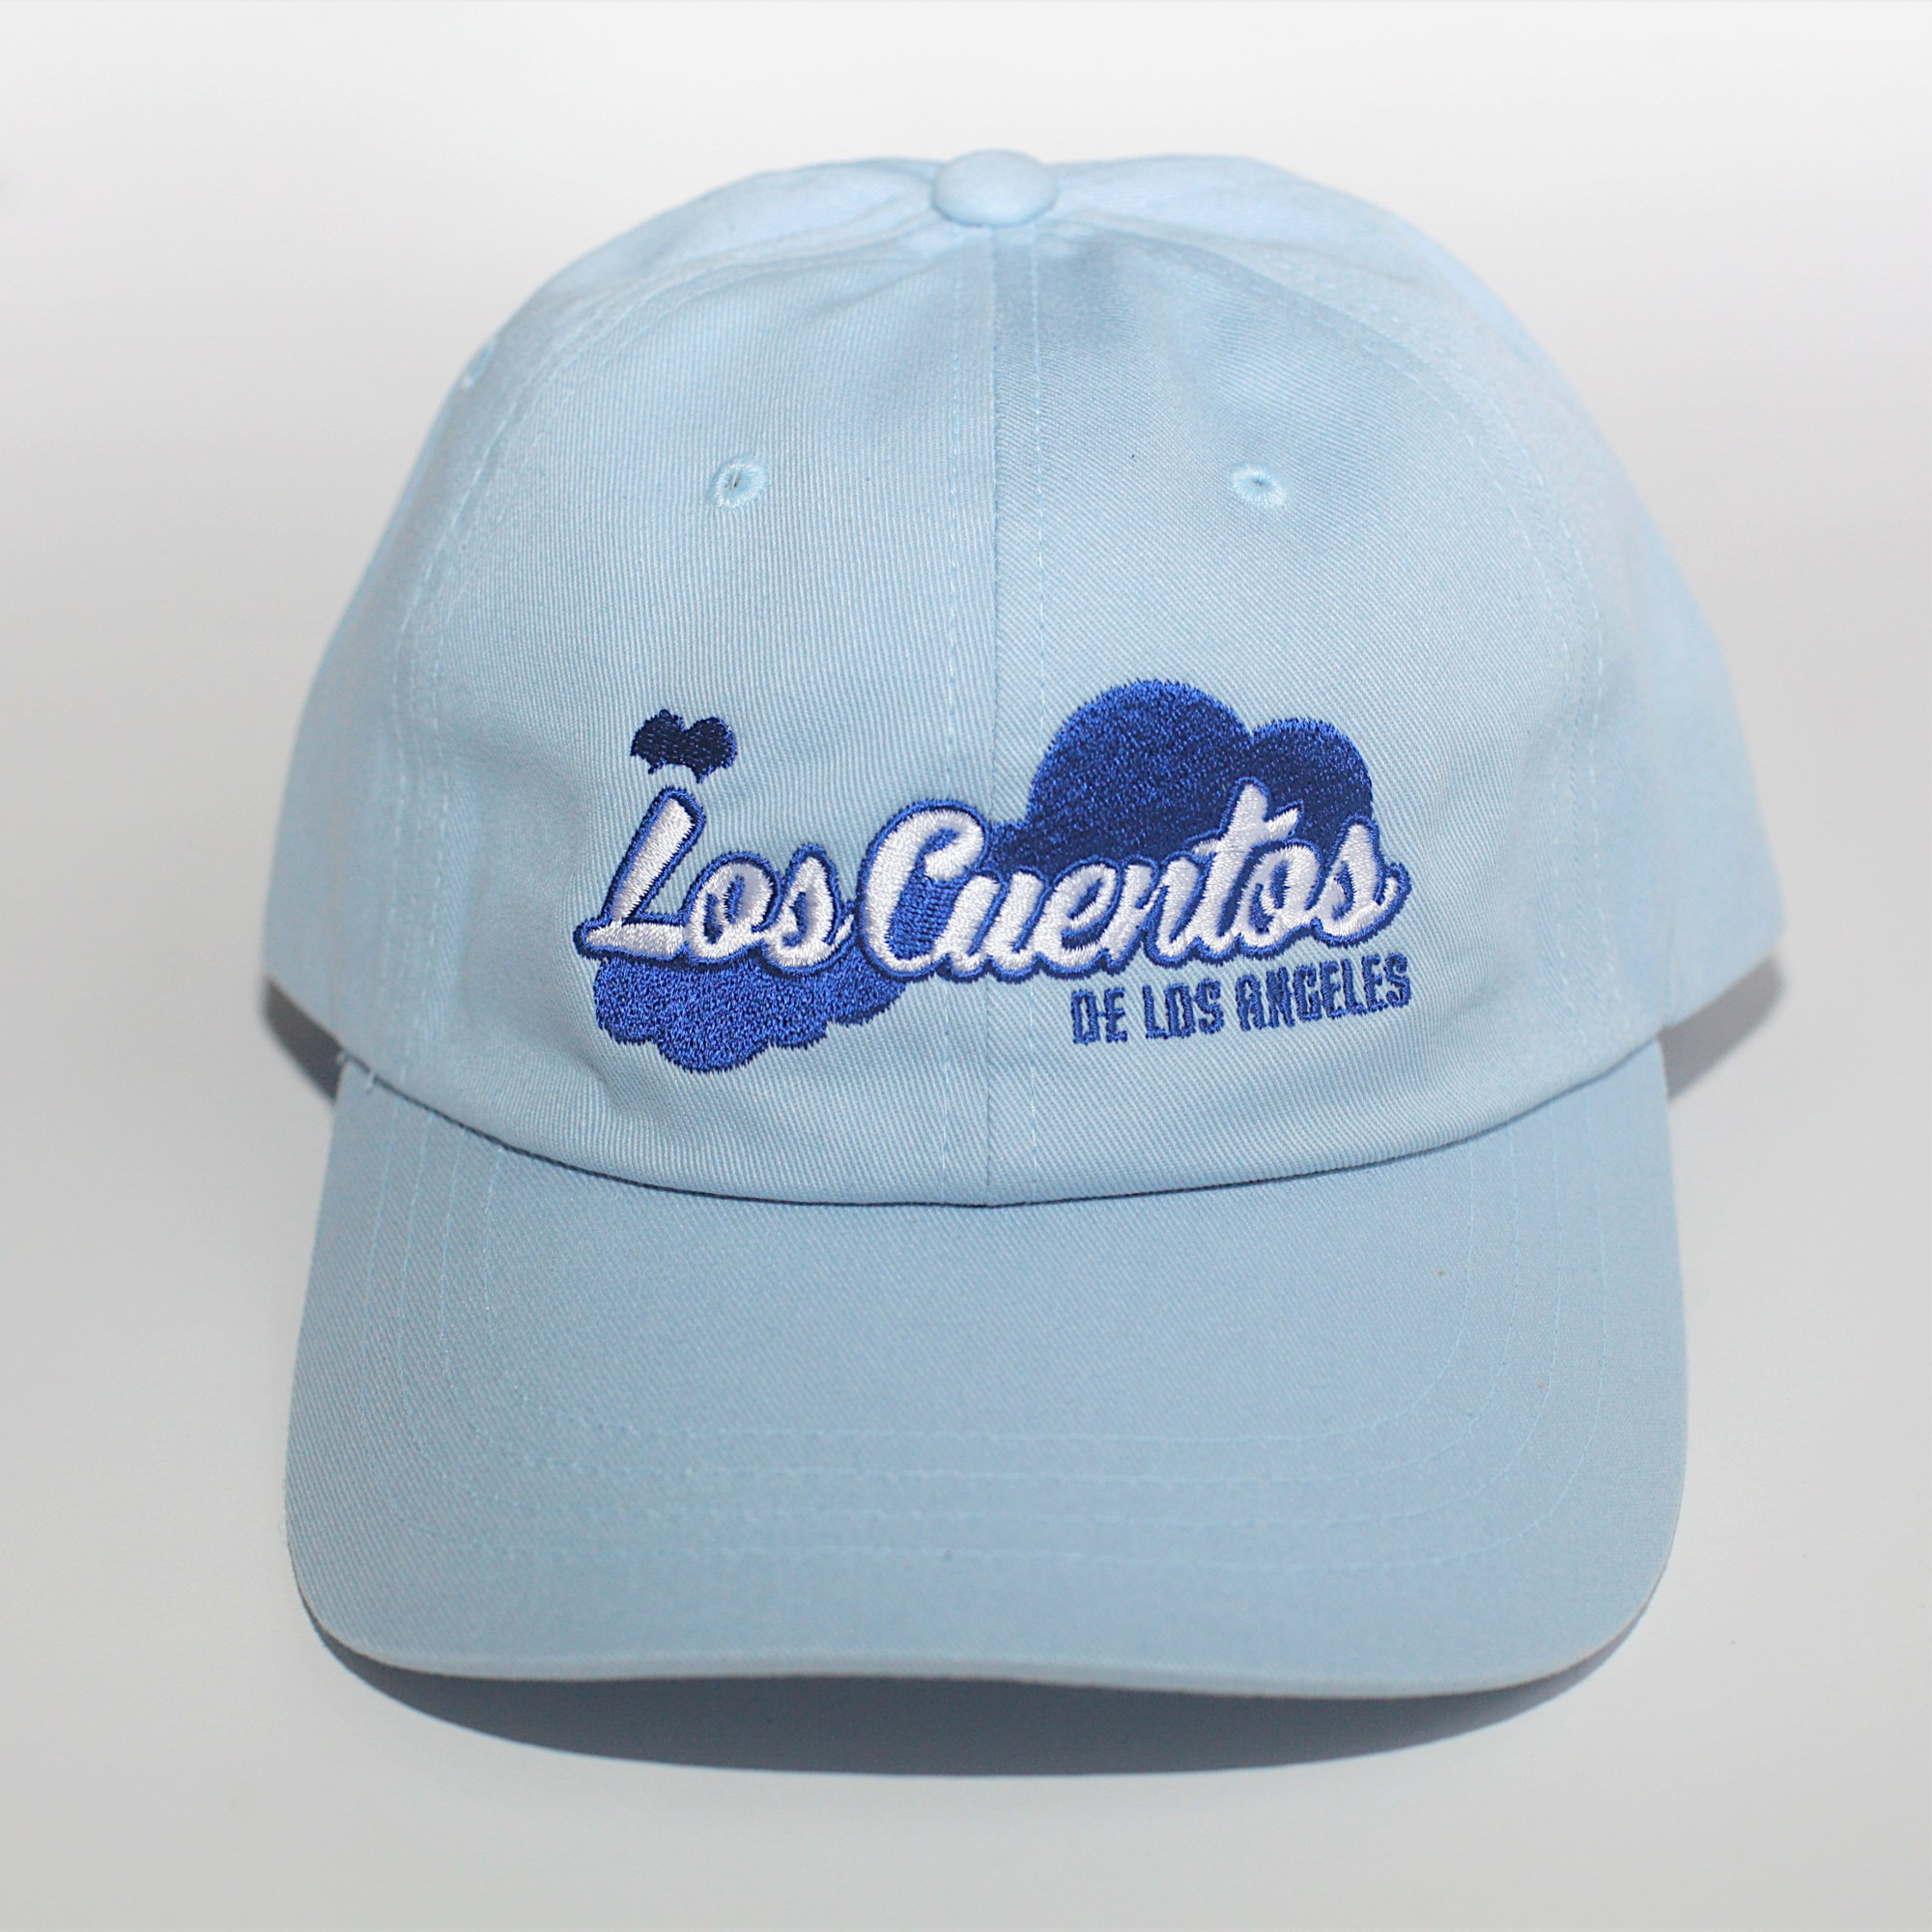 A Sky-blue Los Cuentos hat with navy blue lining and stiching for Los Cuentos